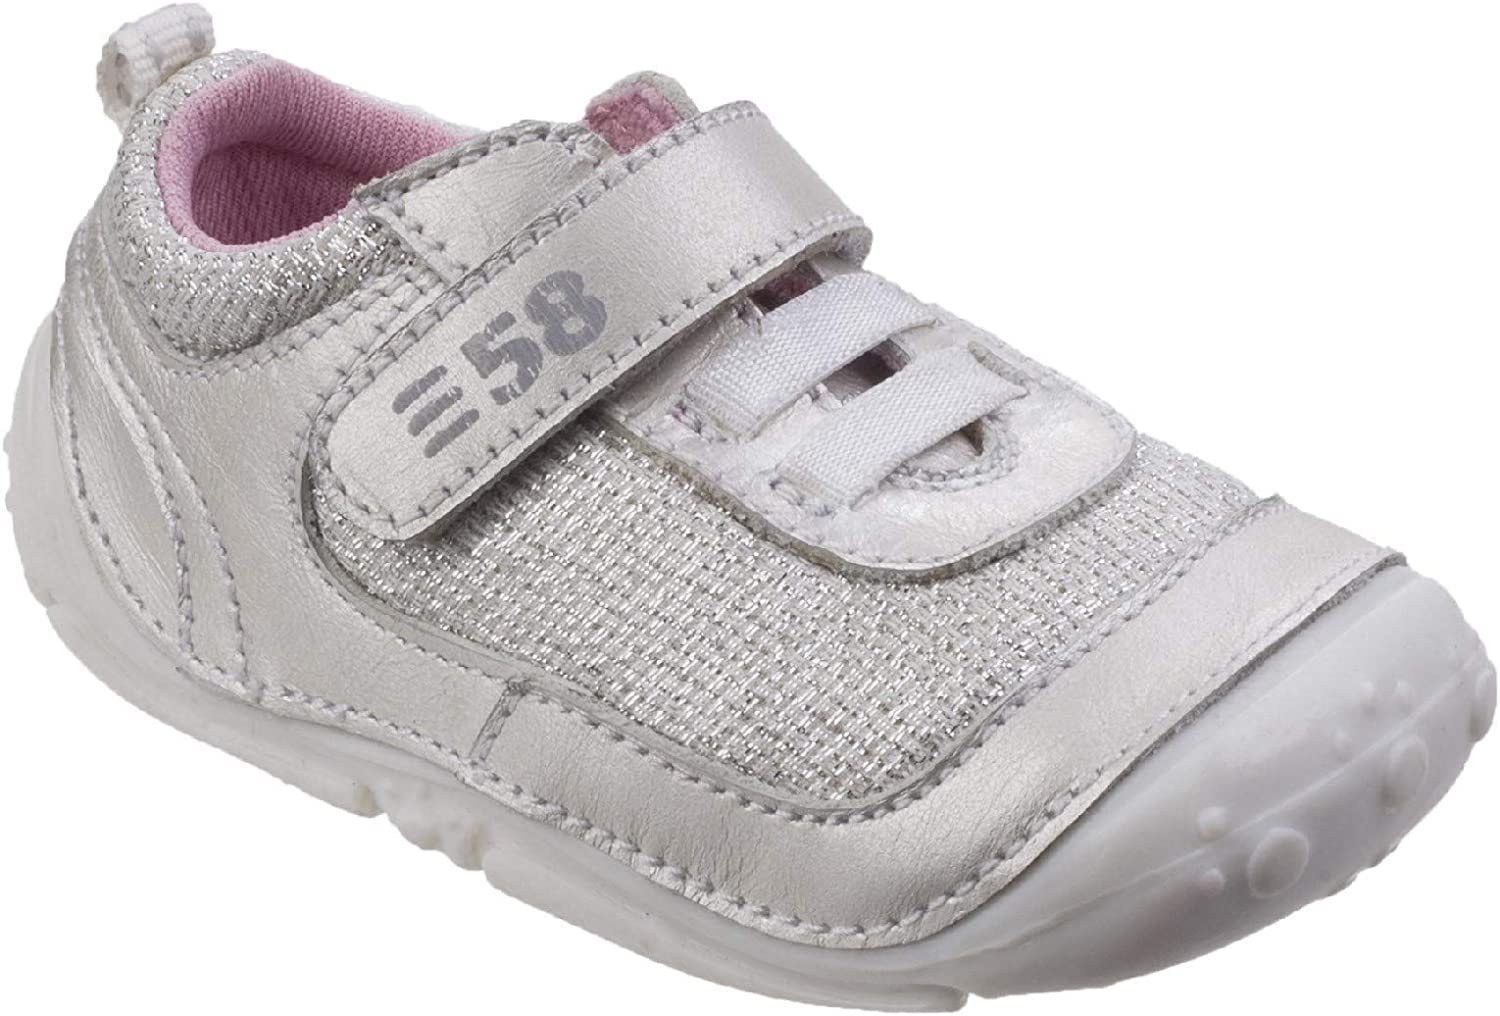 Hush Puppies Womens Livvy Touch Fastening shoes Silver Size UK 4 EU 20